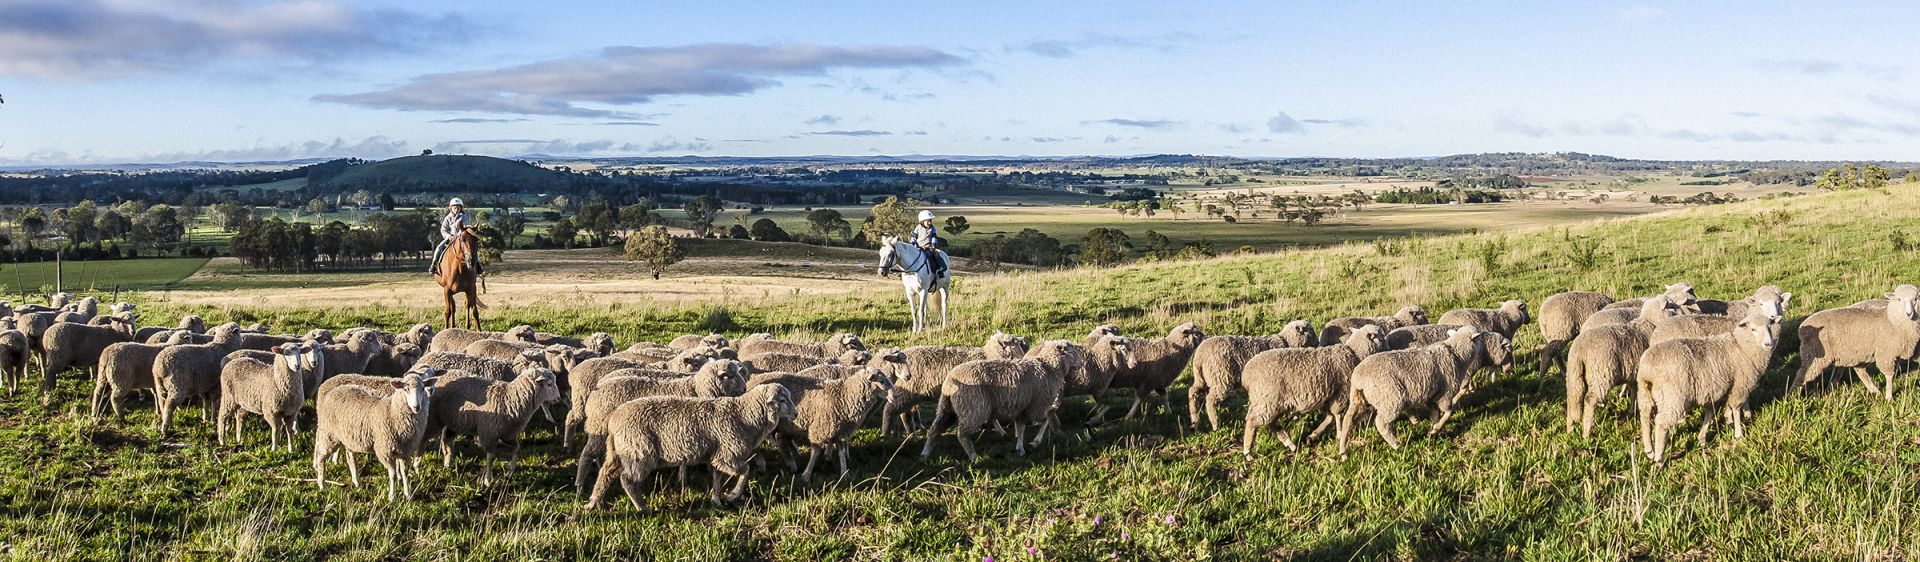 Herding sheep at Milly Hill Farm, New England region, NSW